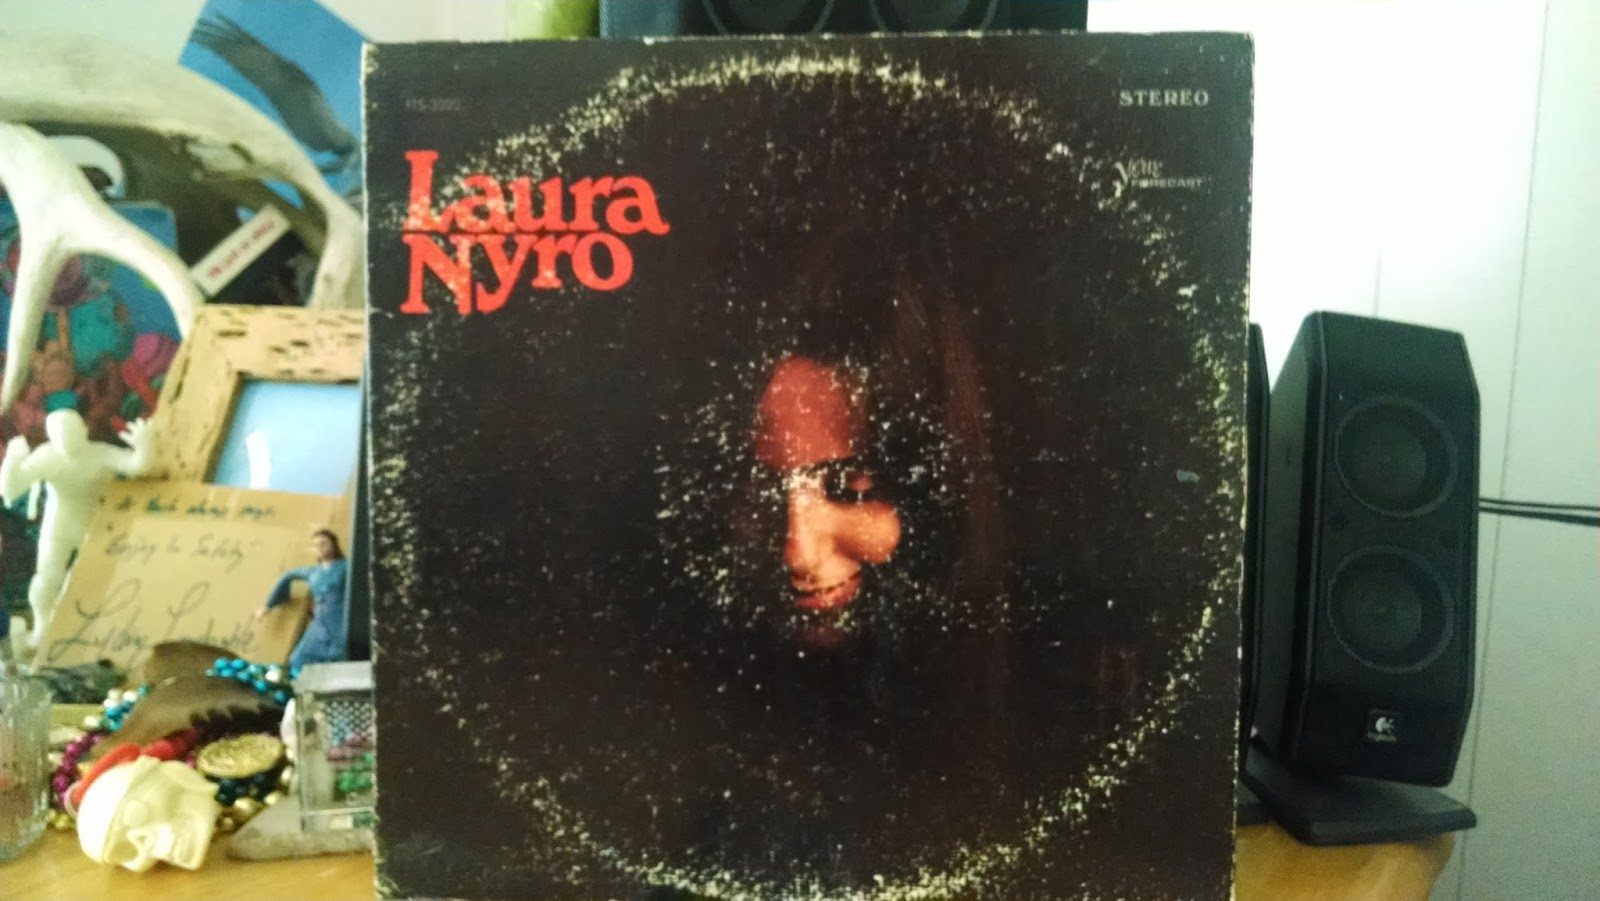 DOWN UNDERGROUND: Laura Nyro - The First Songs    LP 73 w New York